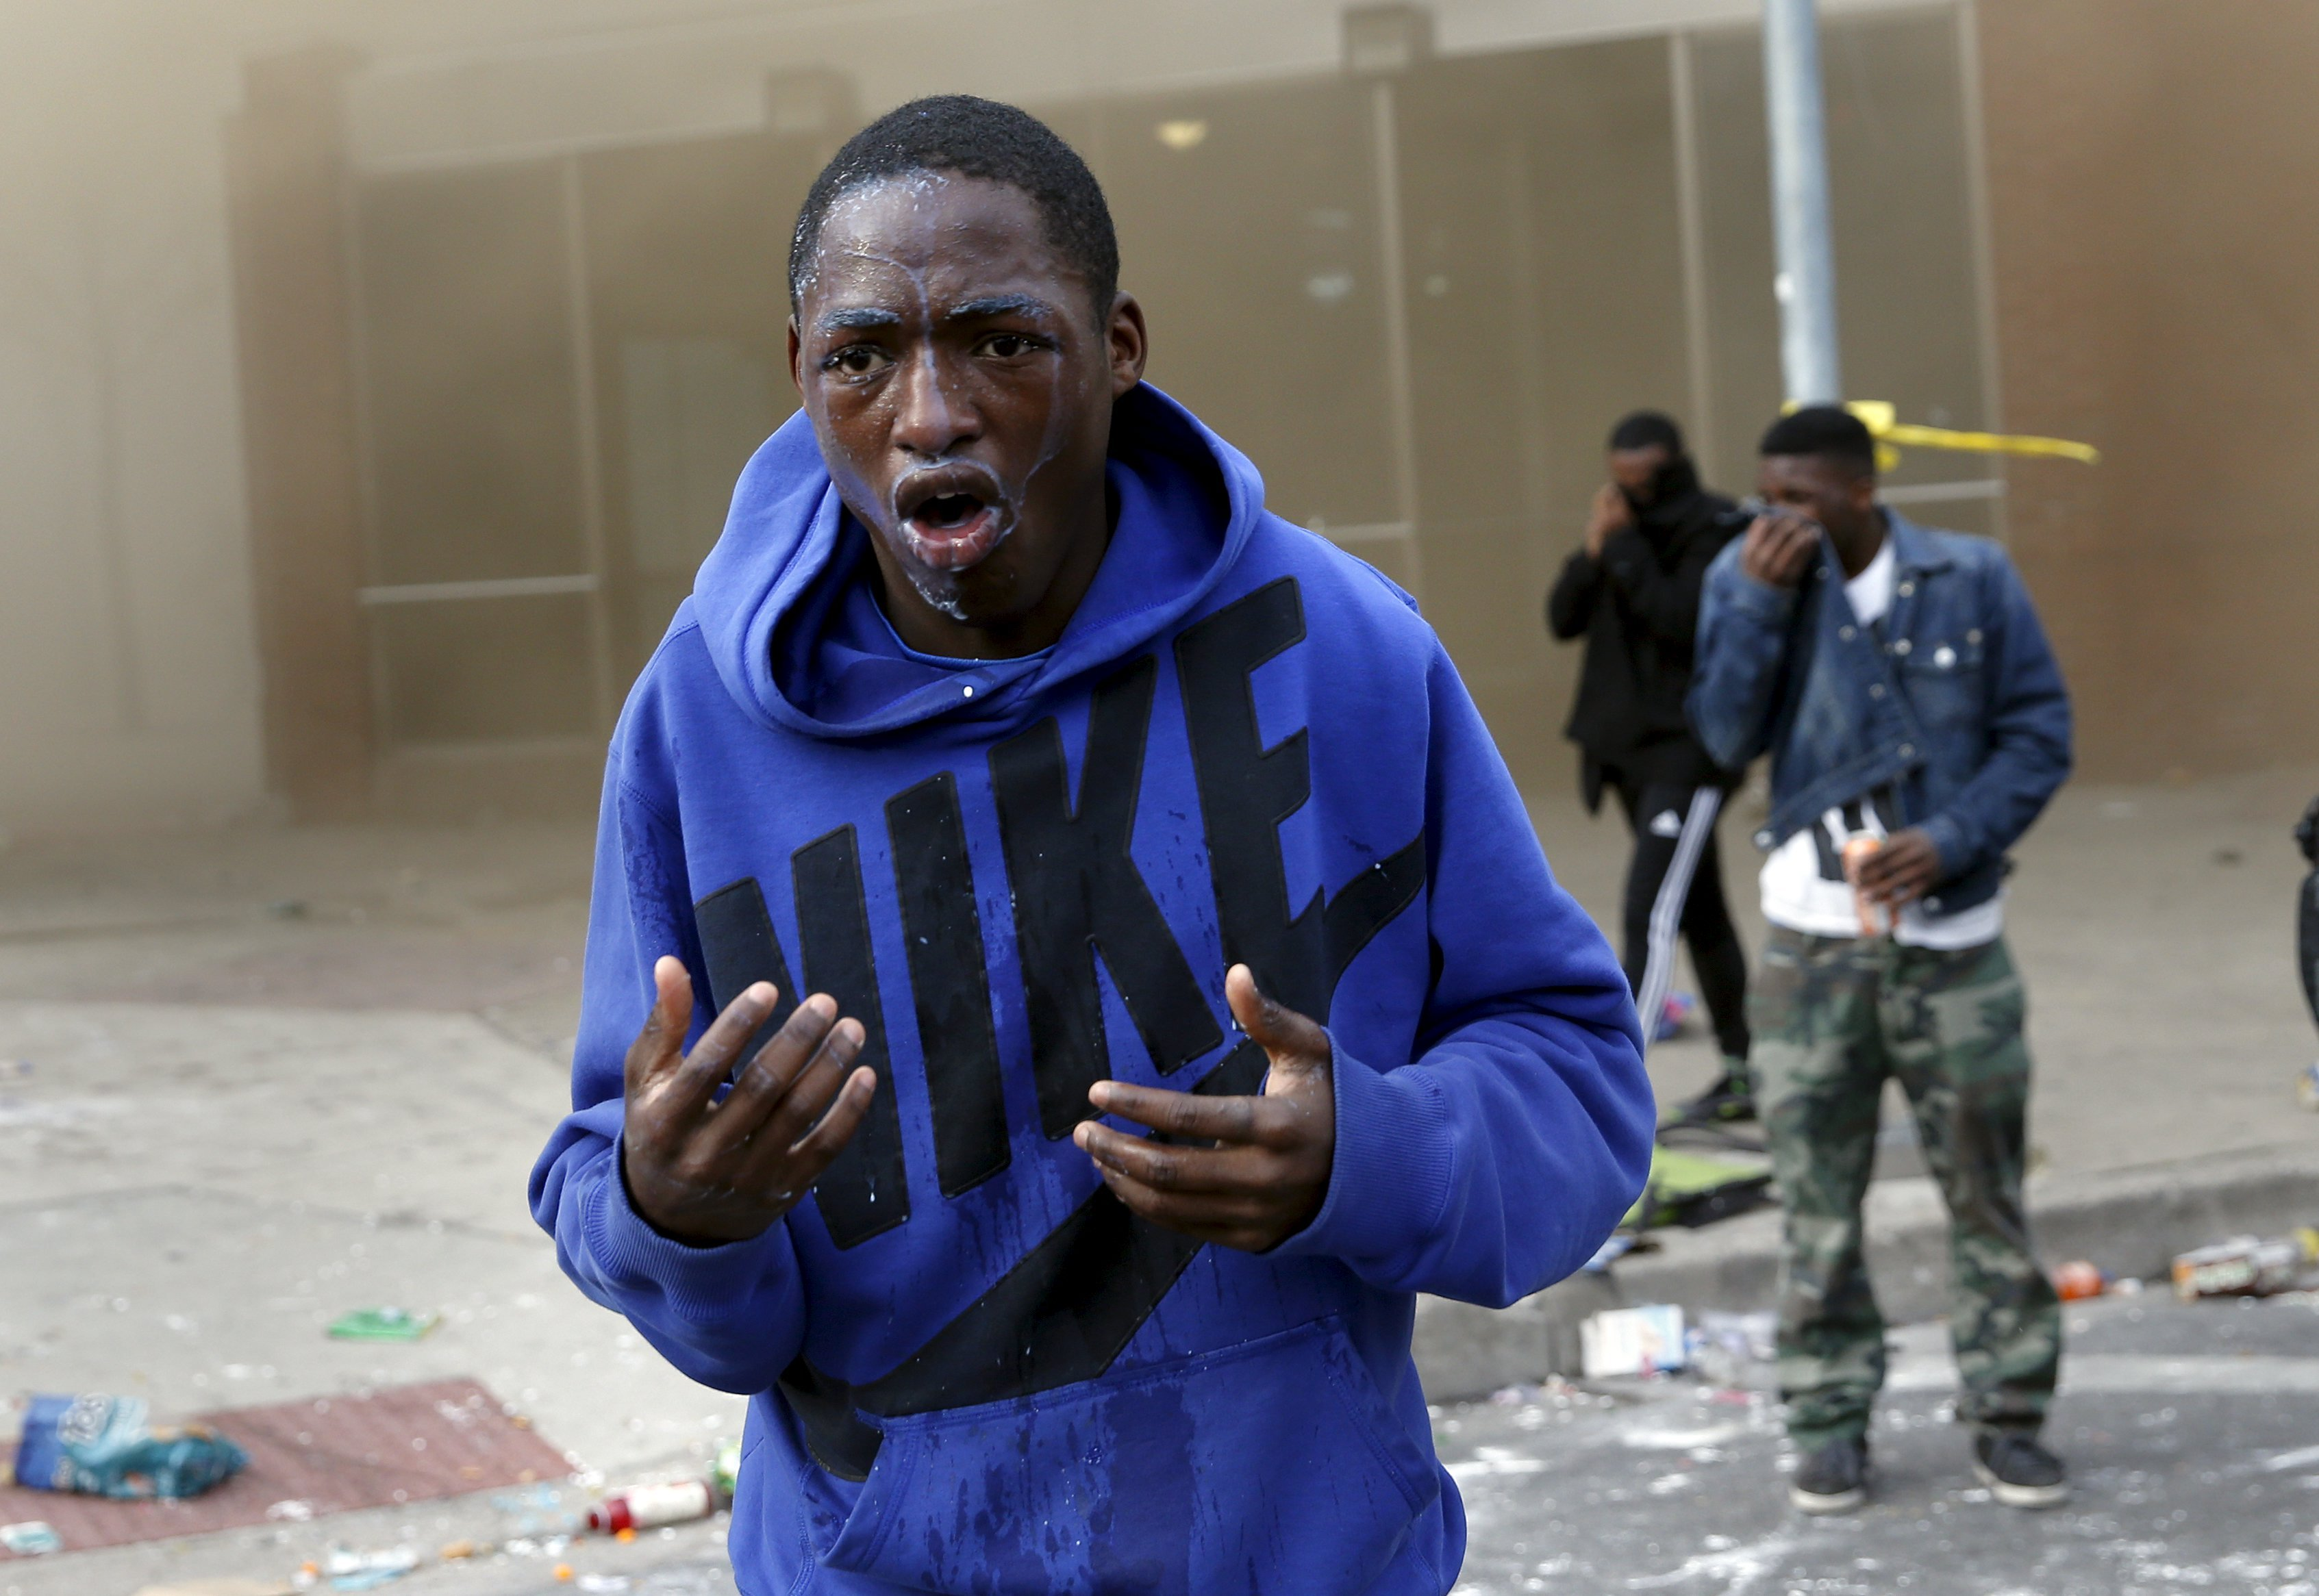 A demonstrator looks up after being sprayed with pepper spray during clashes in Baltimore on April 27, 2015.